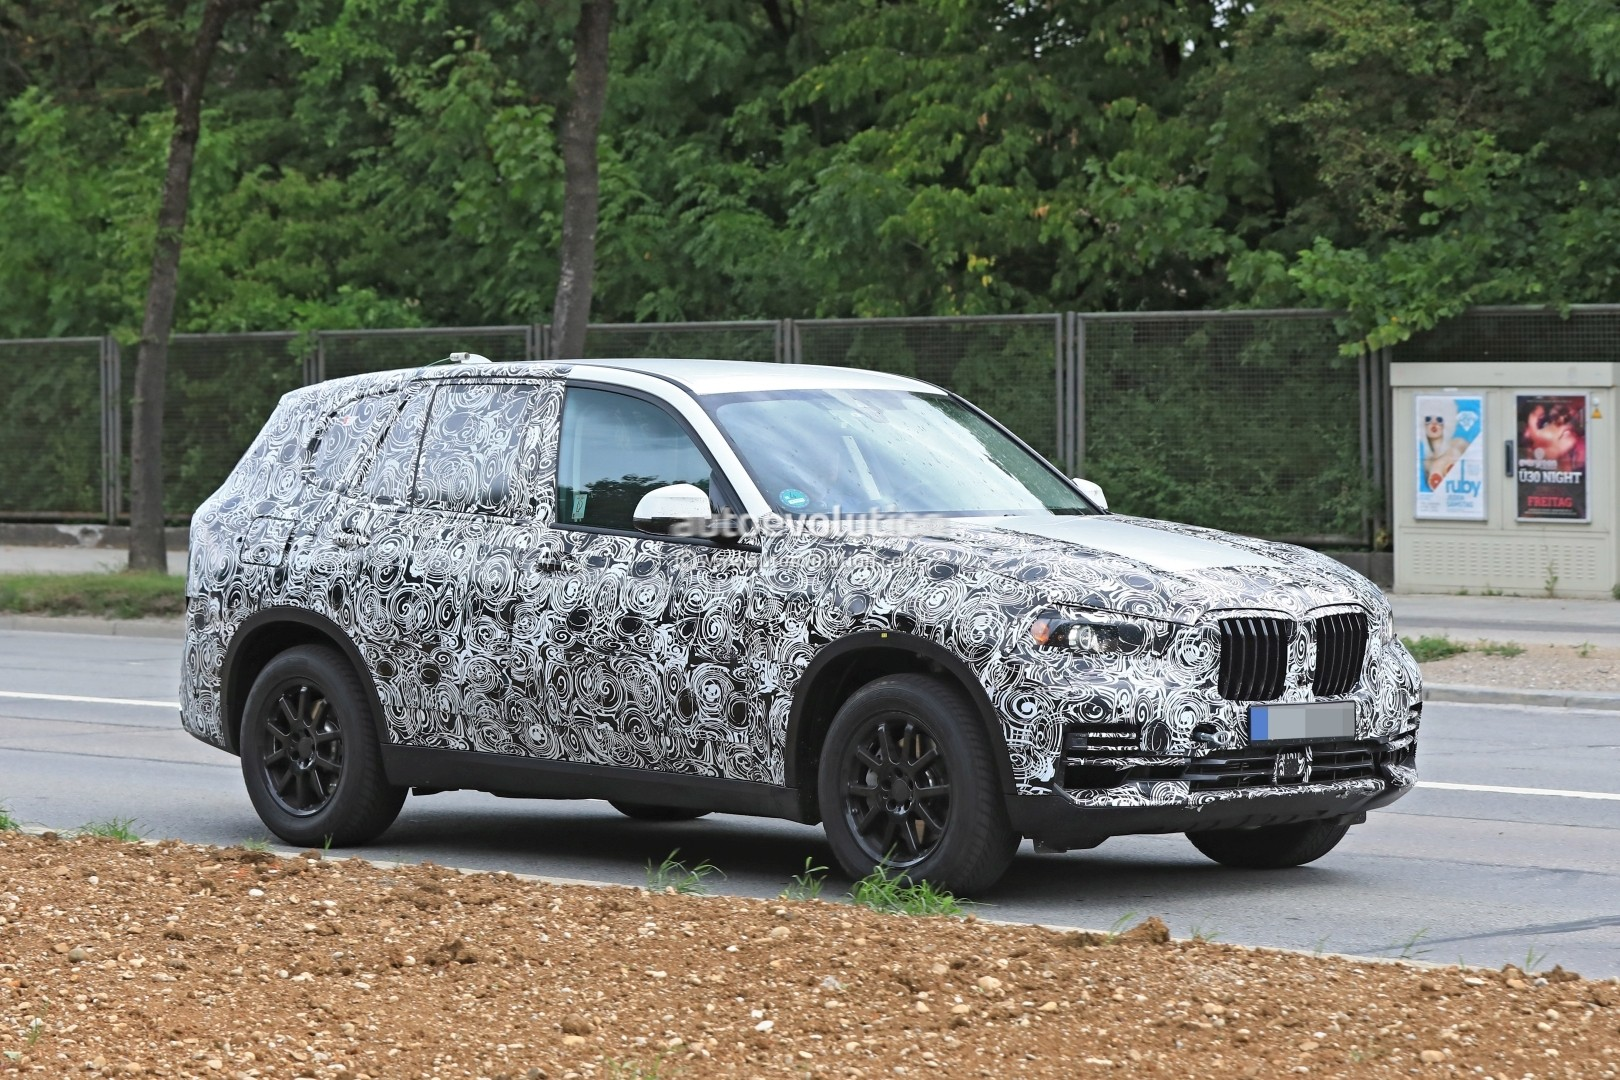 2019-bmw-x5-spied-prototype-reveals-new-angular-design-front-air-intakes_4